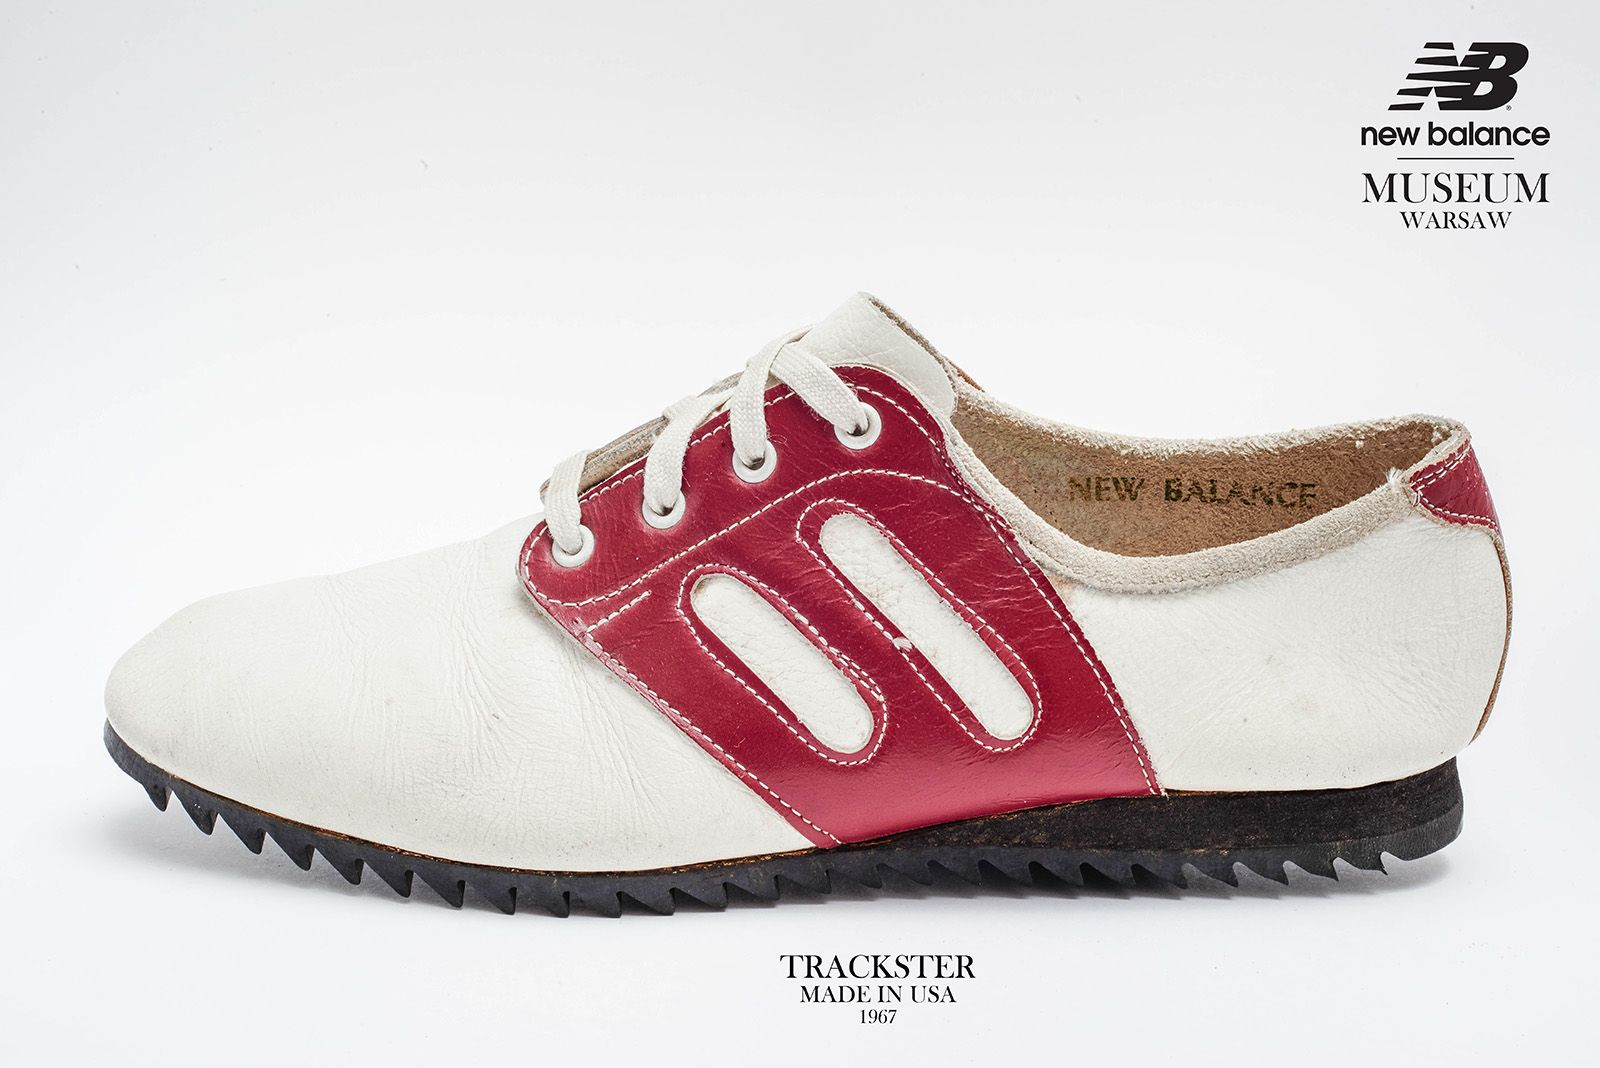 Trackster 1960